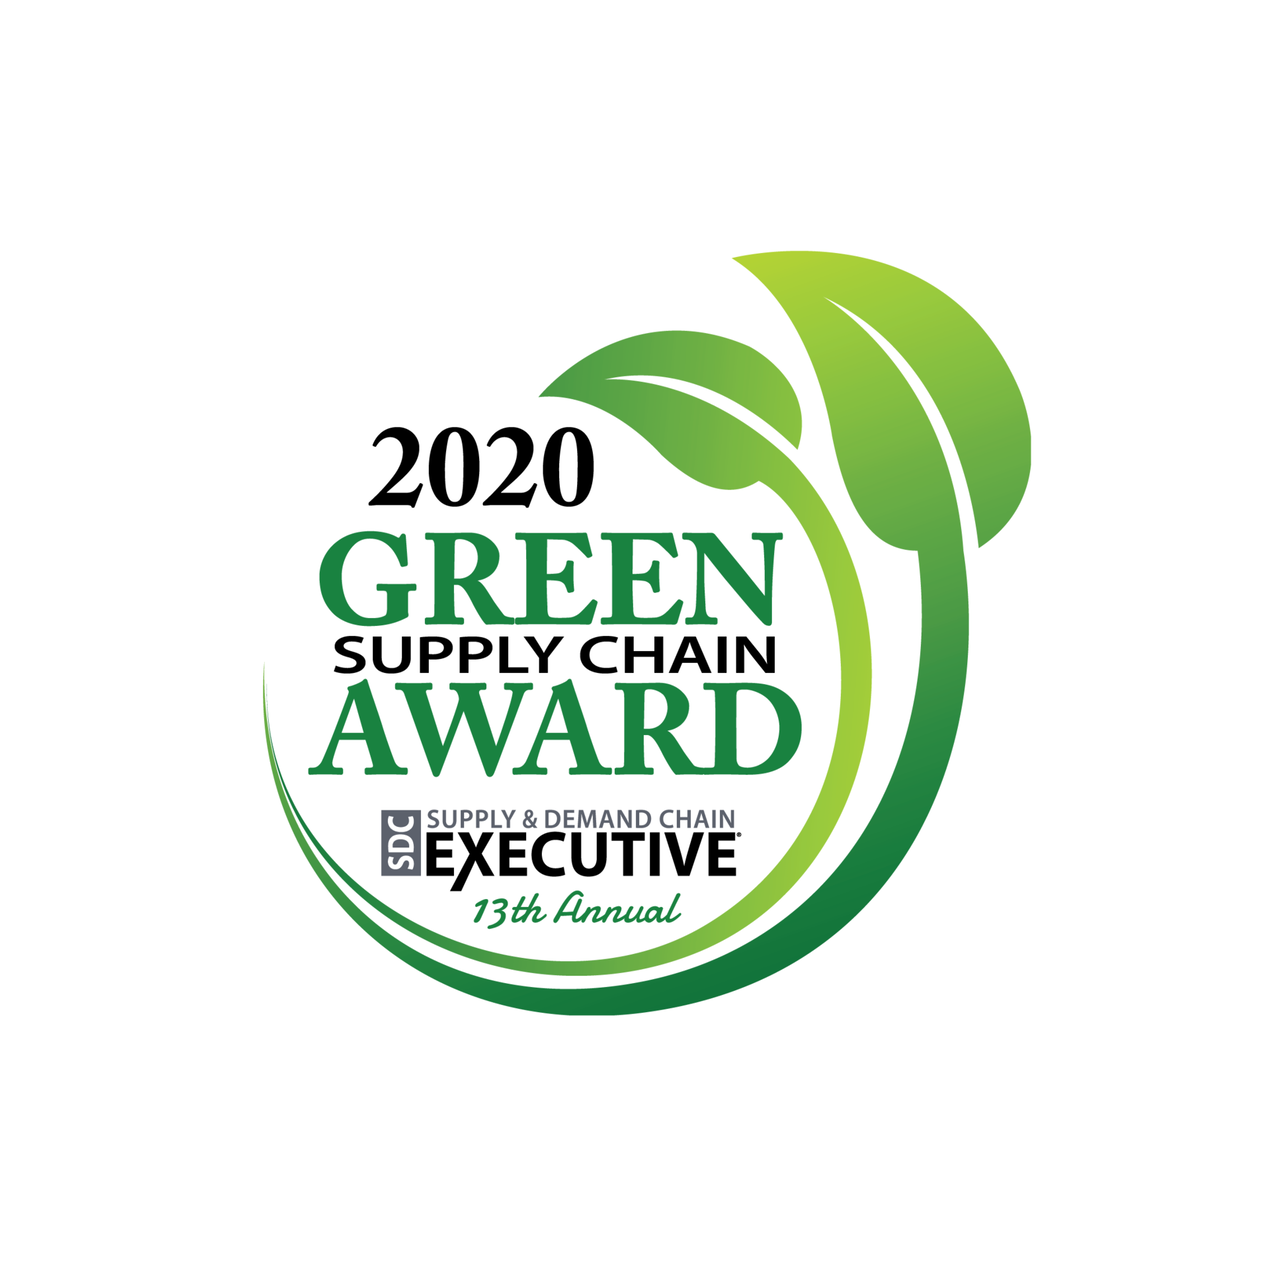 PINC Receives 2020 Supply & Demand Chain Executive Green Supply Chain Award